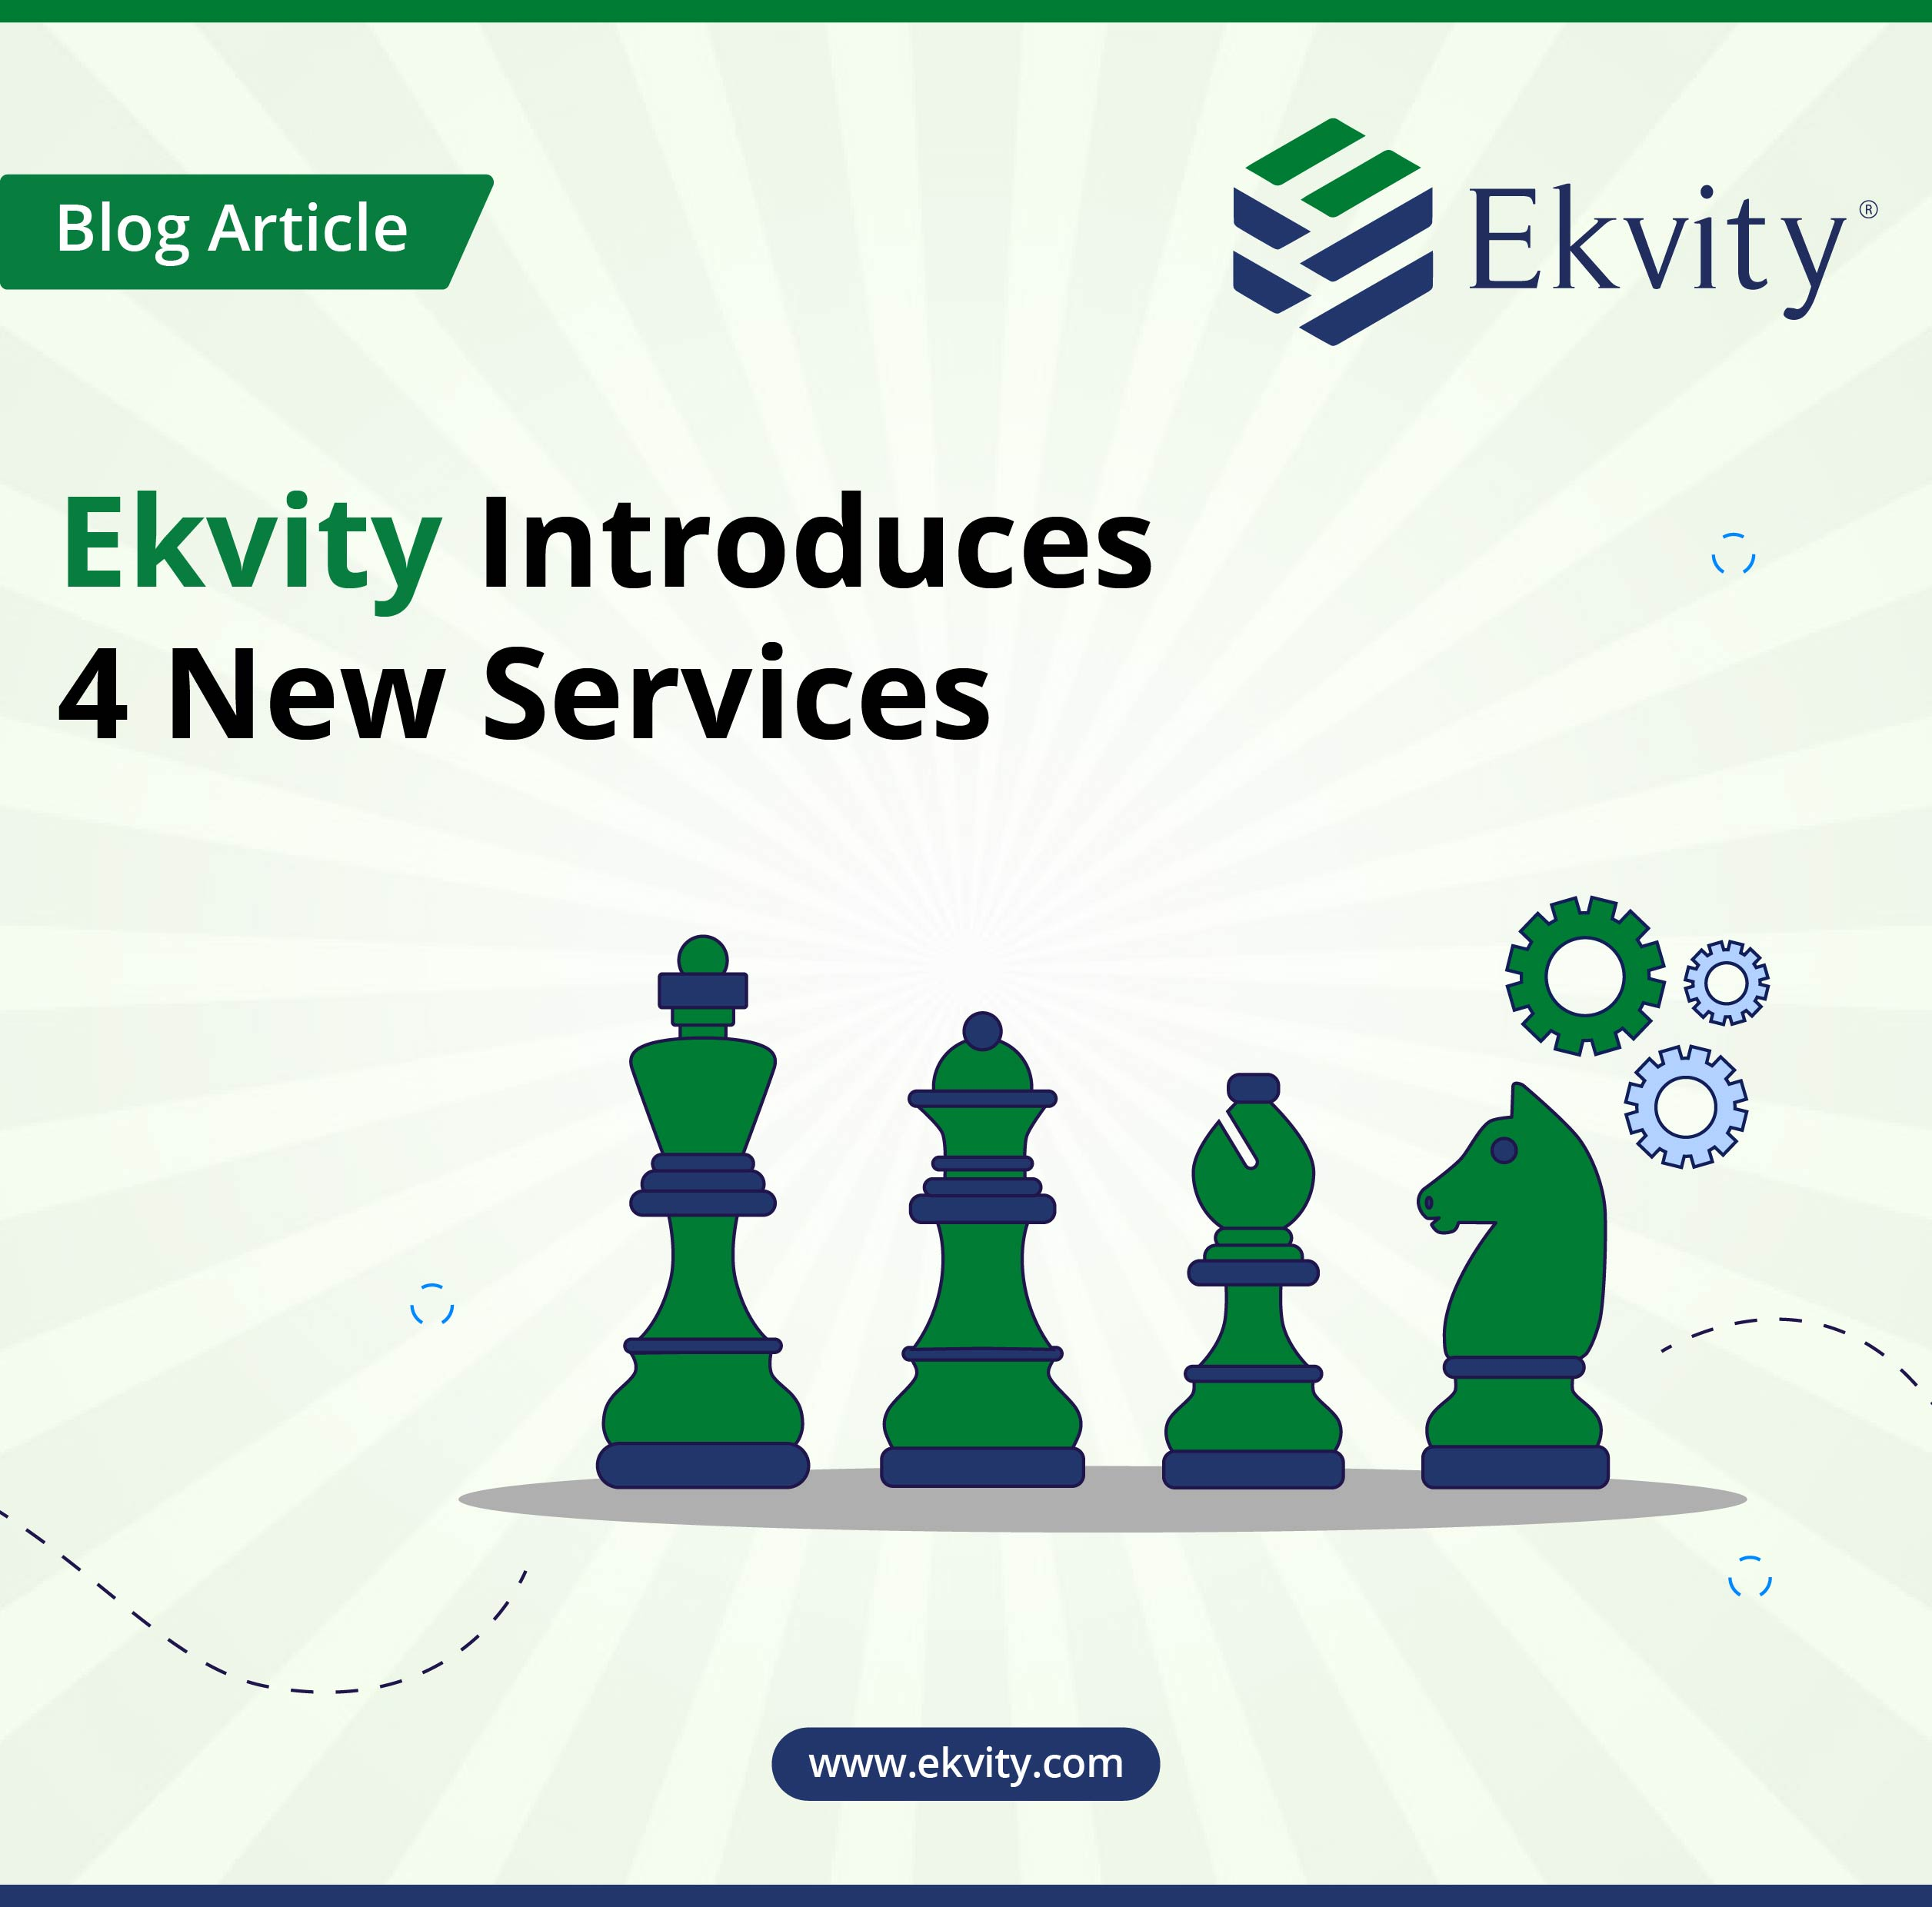 Ekvity Introduces 4 New Services